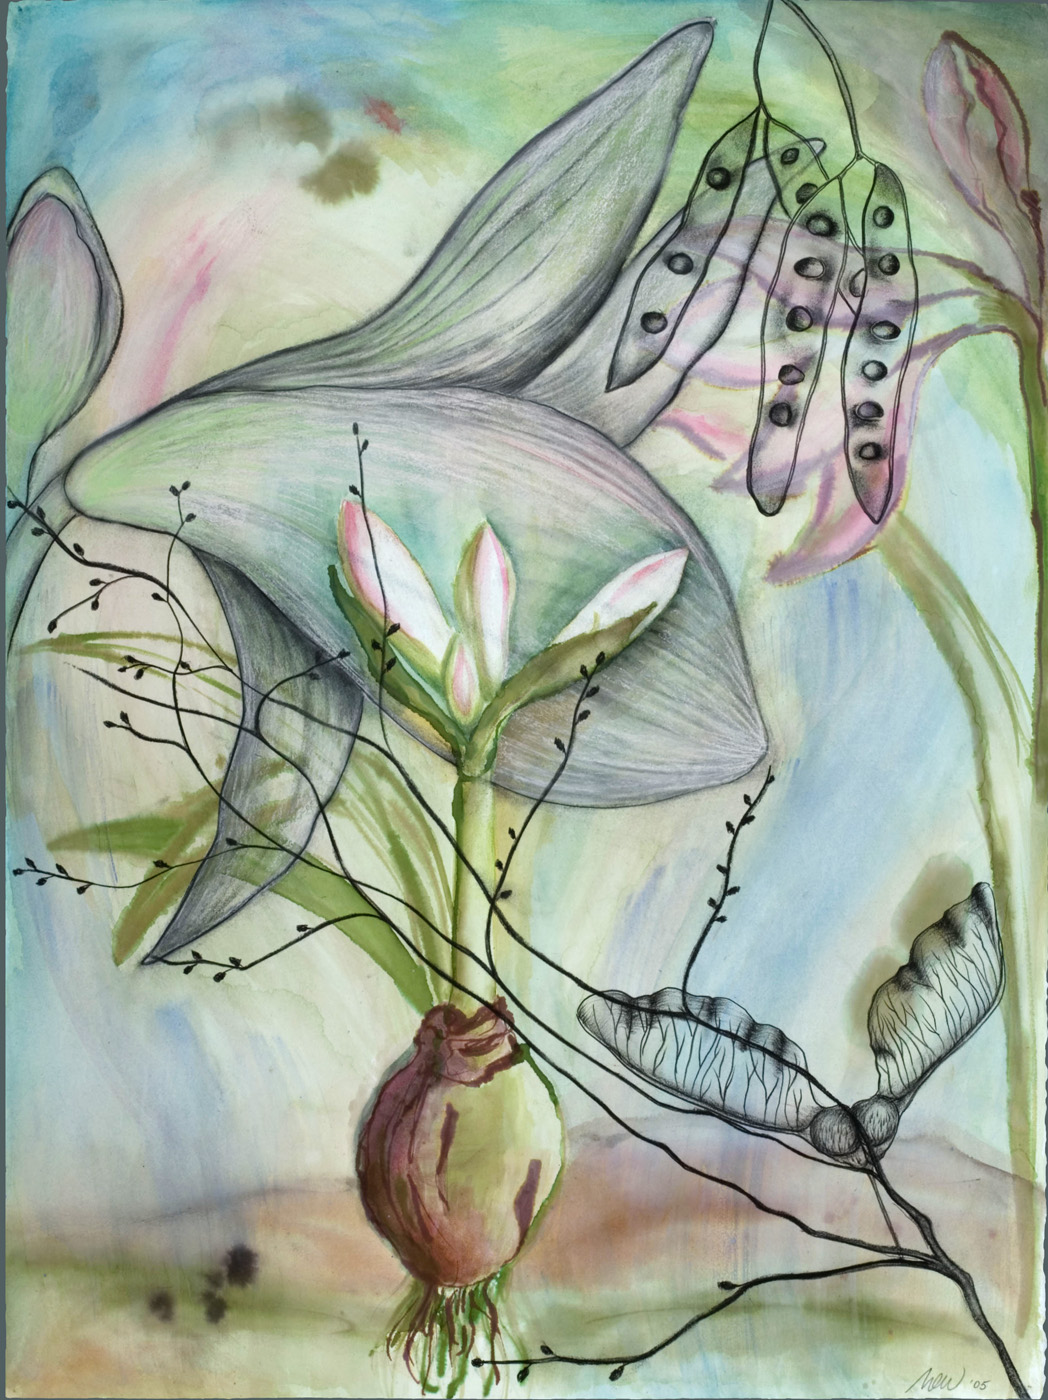 Amaryllis Bulb With Samaras Watercolor, ink, and charcoal on paper, 22 x 30 inches